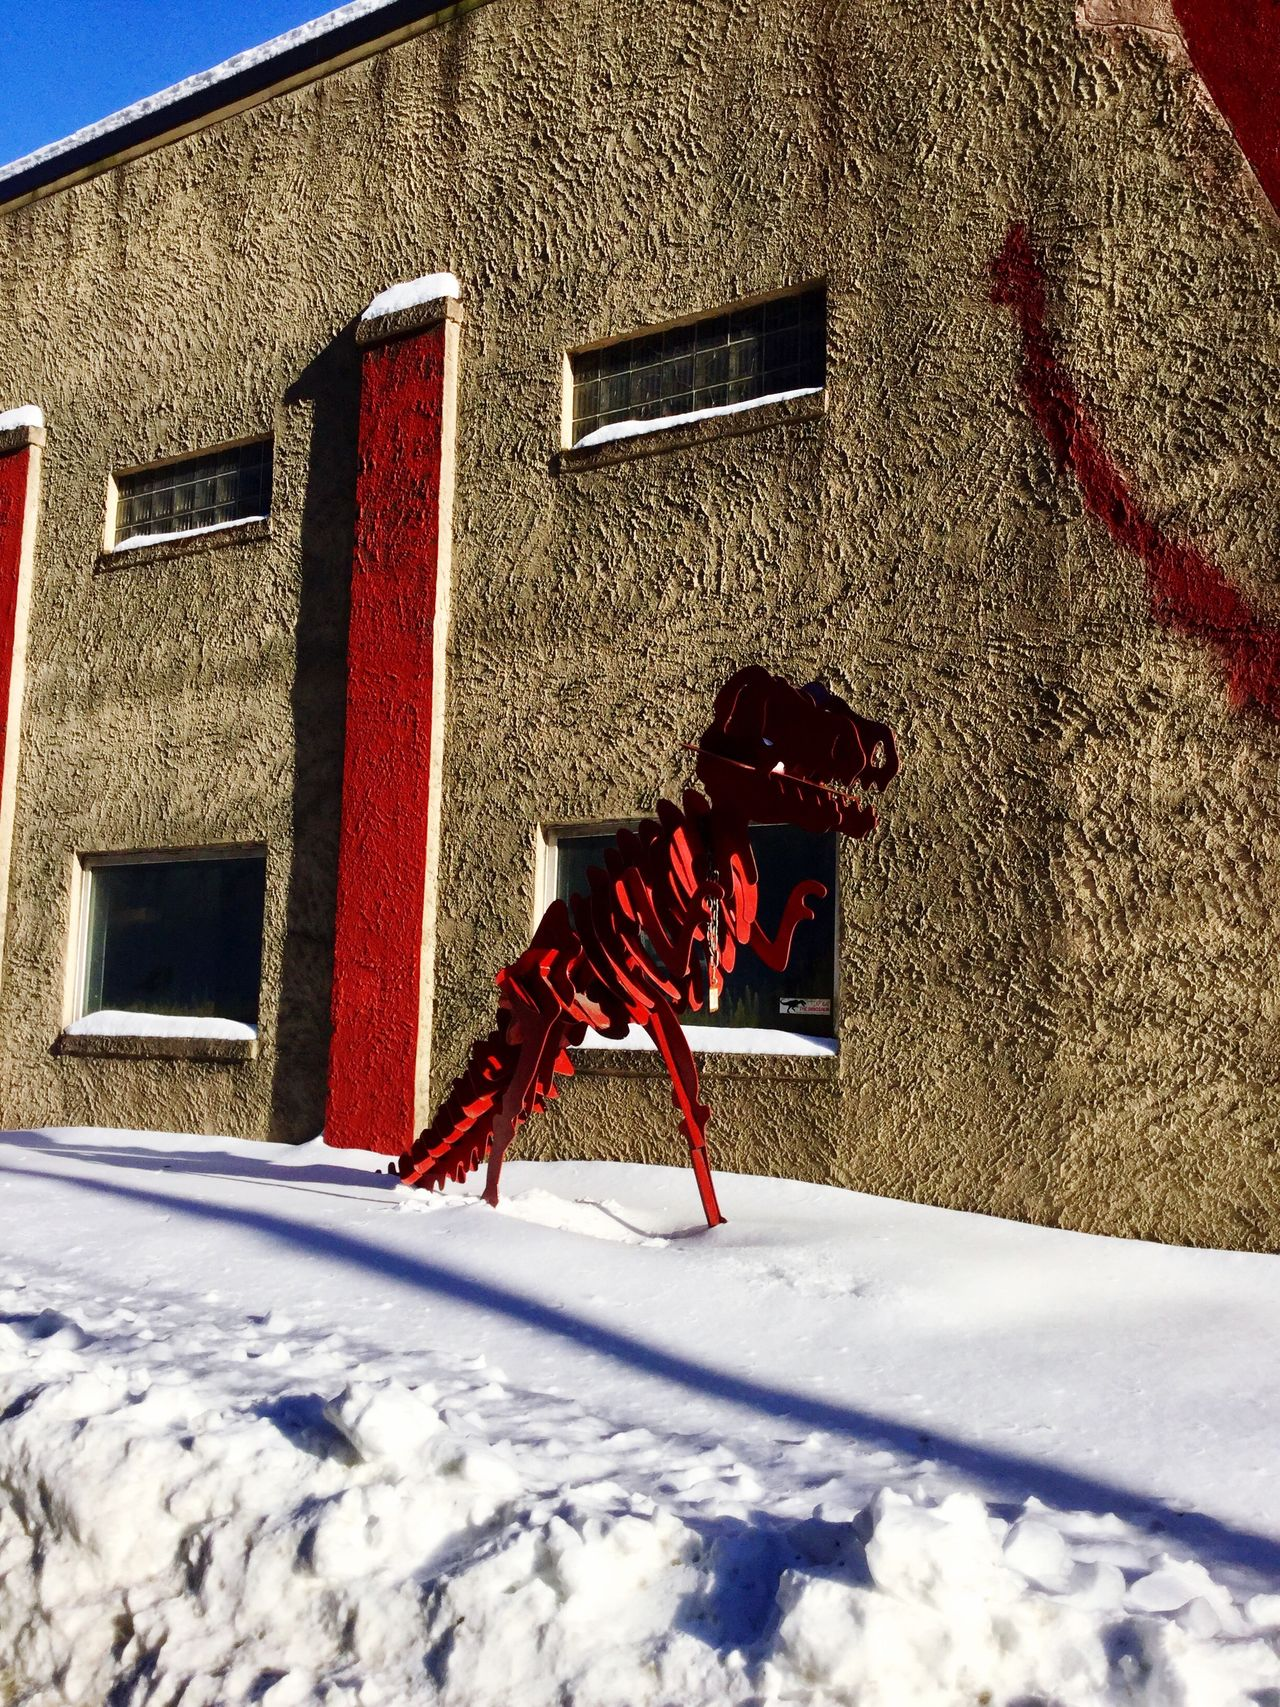 Eye Em New Here Snow Winter Red Built Structure Architecture Outdoors Building Exterior Cold Temperature Day